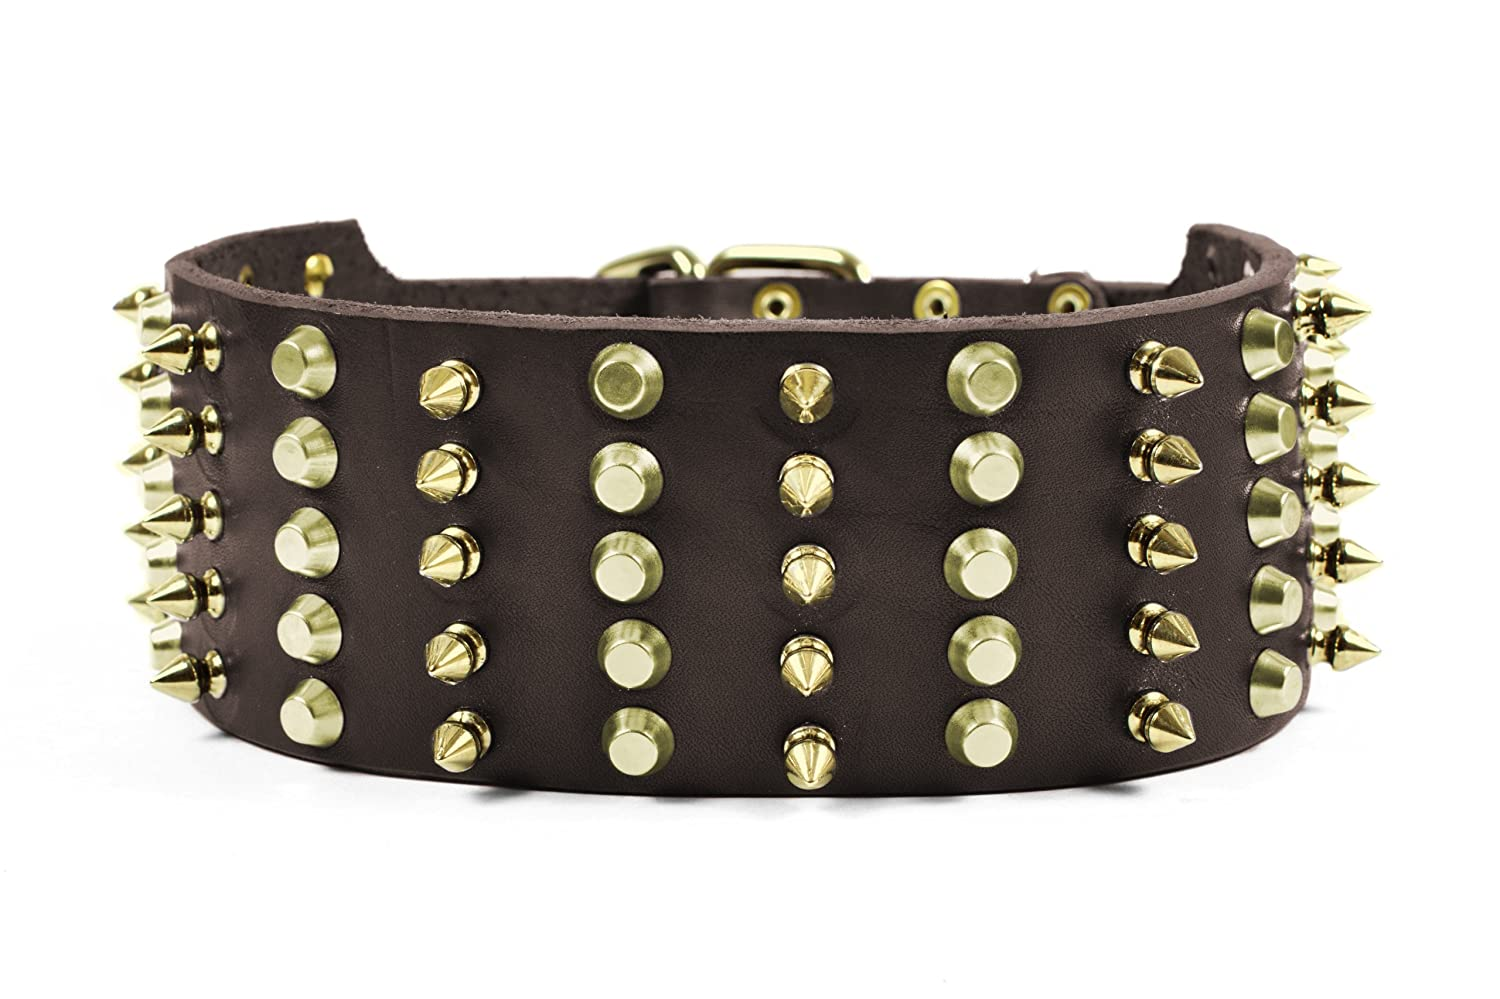 Dean & Tyler Wide Heaven Dog Collar with Brass Spikes Studs Buckle, 20 by 2-3 4-Inch, Brown